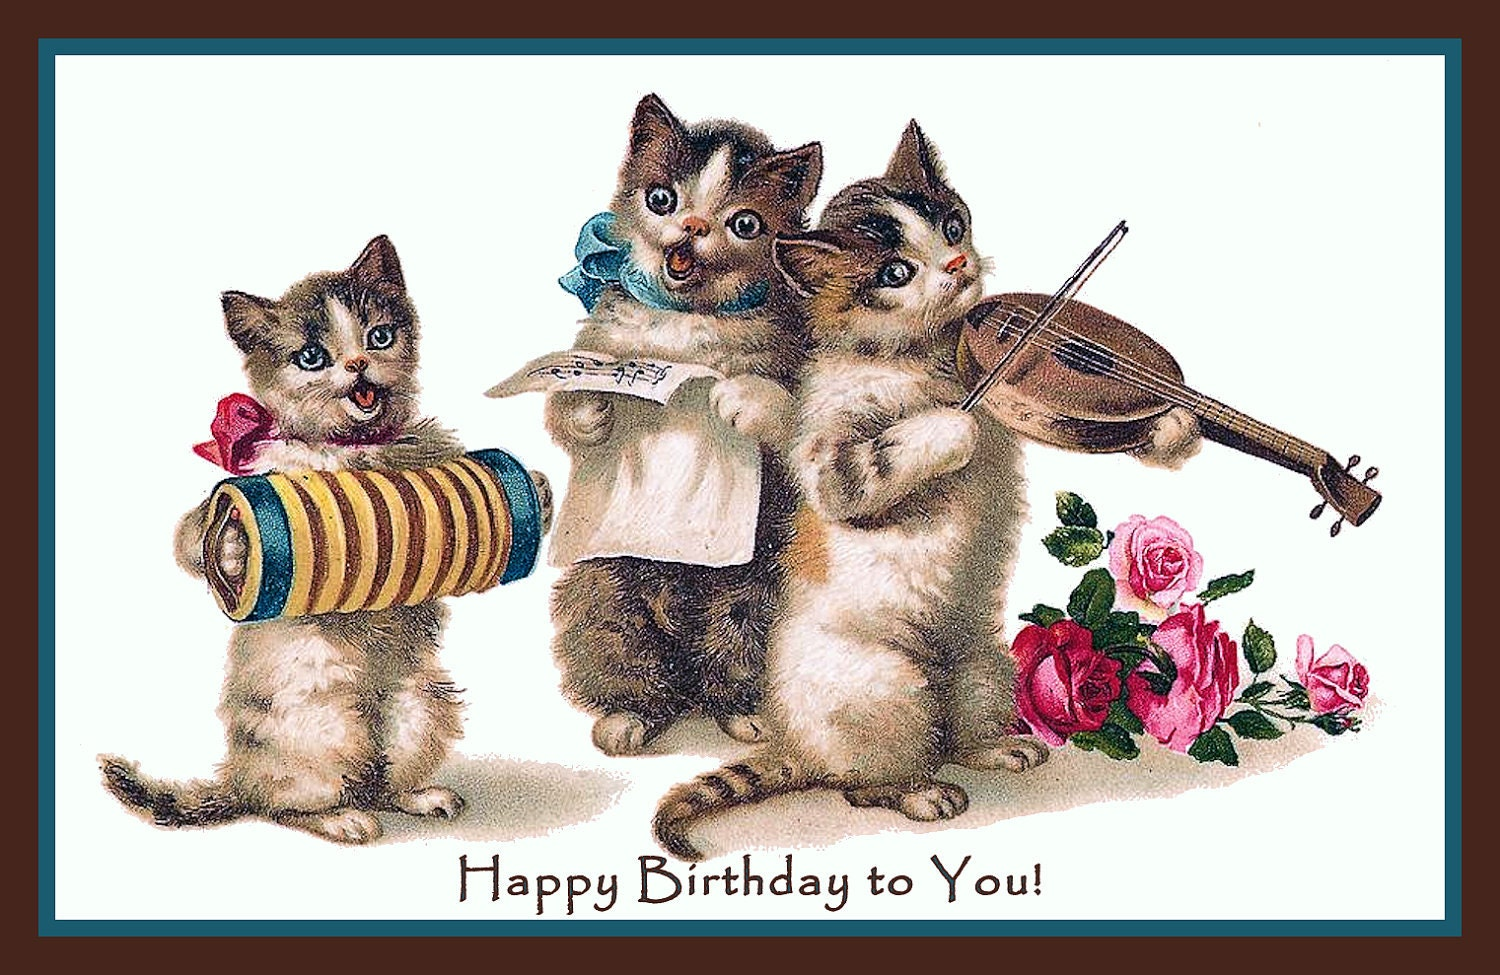 happy birthday images with cats